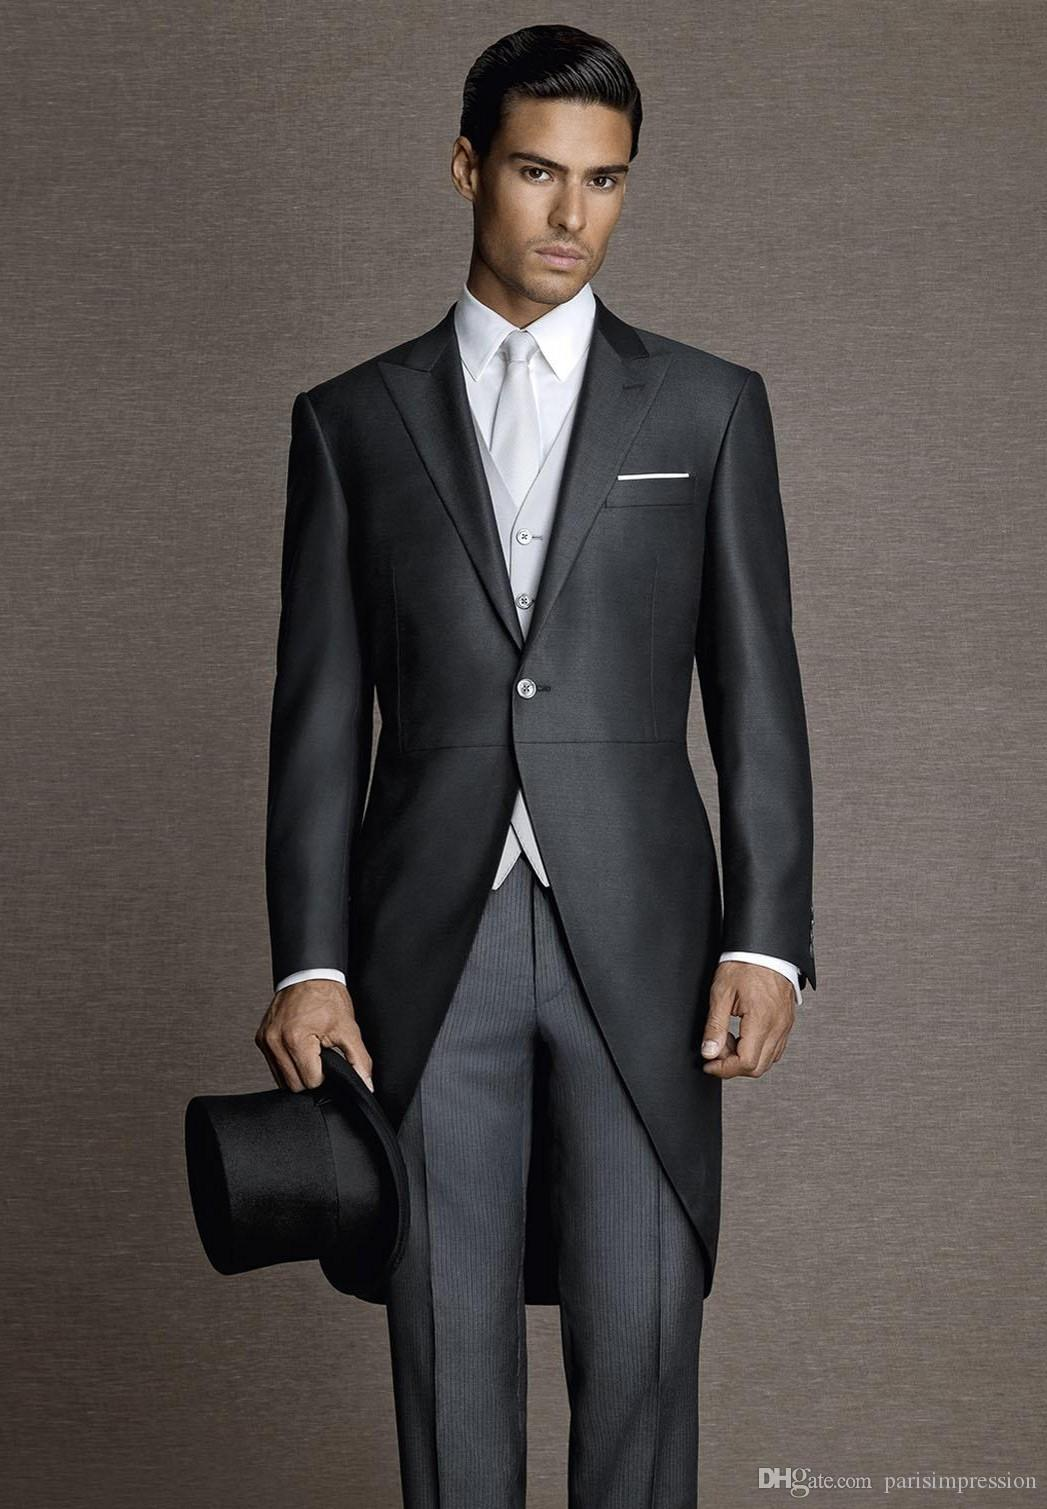 Vintage Black Men Tailcoats Peaked Lapel Wedding Suits For Men ...